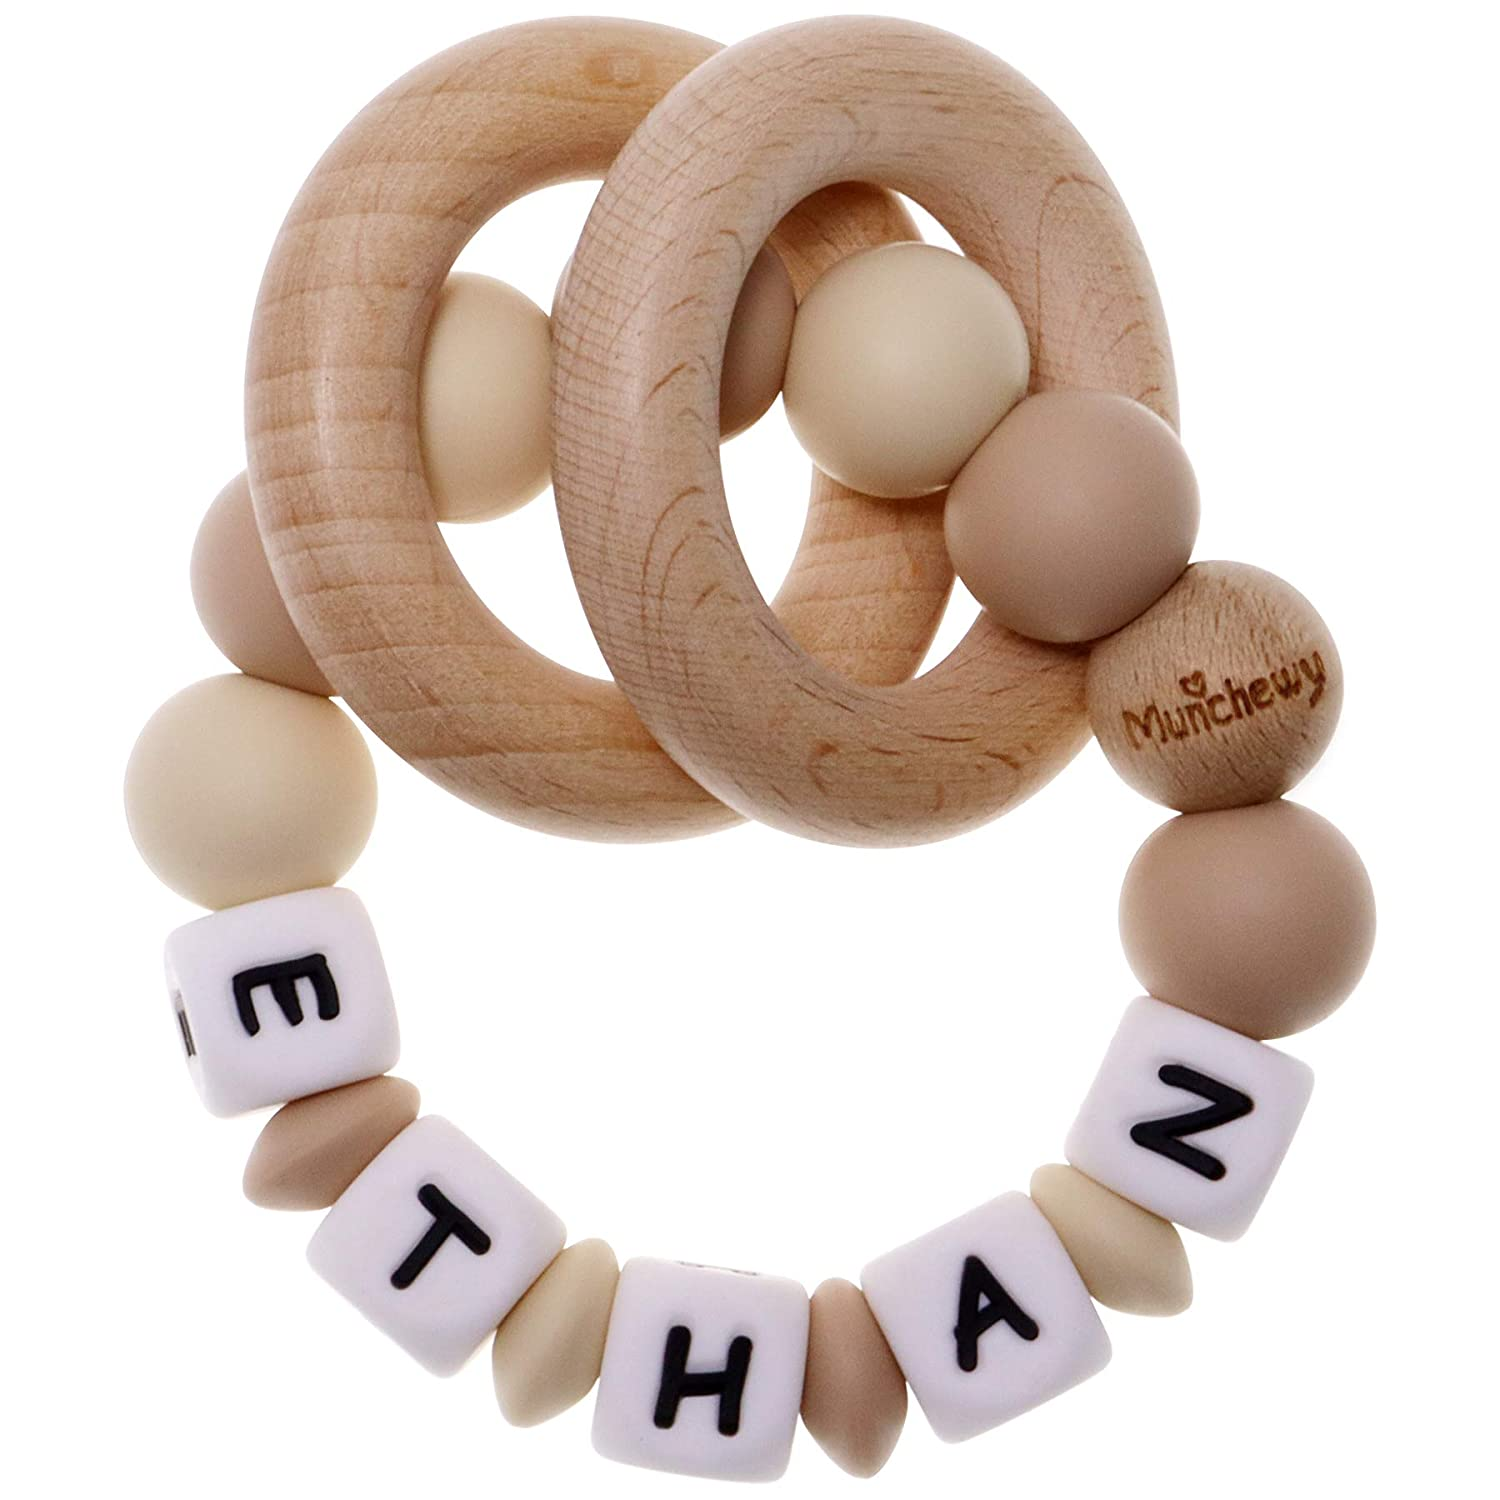 Munchewy Personalized Name Baby Rattle Teether Ring, Customizable Food Grade Silicone Sensory Chew Bracelet with Natural Organic Beech Wood Teething Rings for Baby Boys Girls(Oatmeal/Khaki)